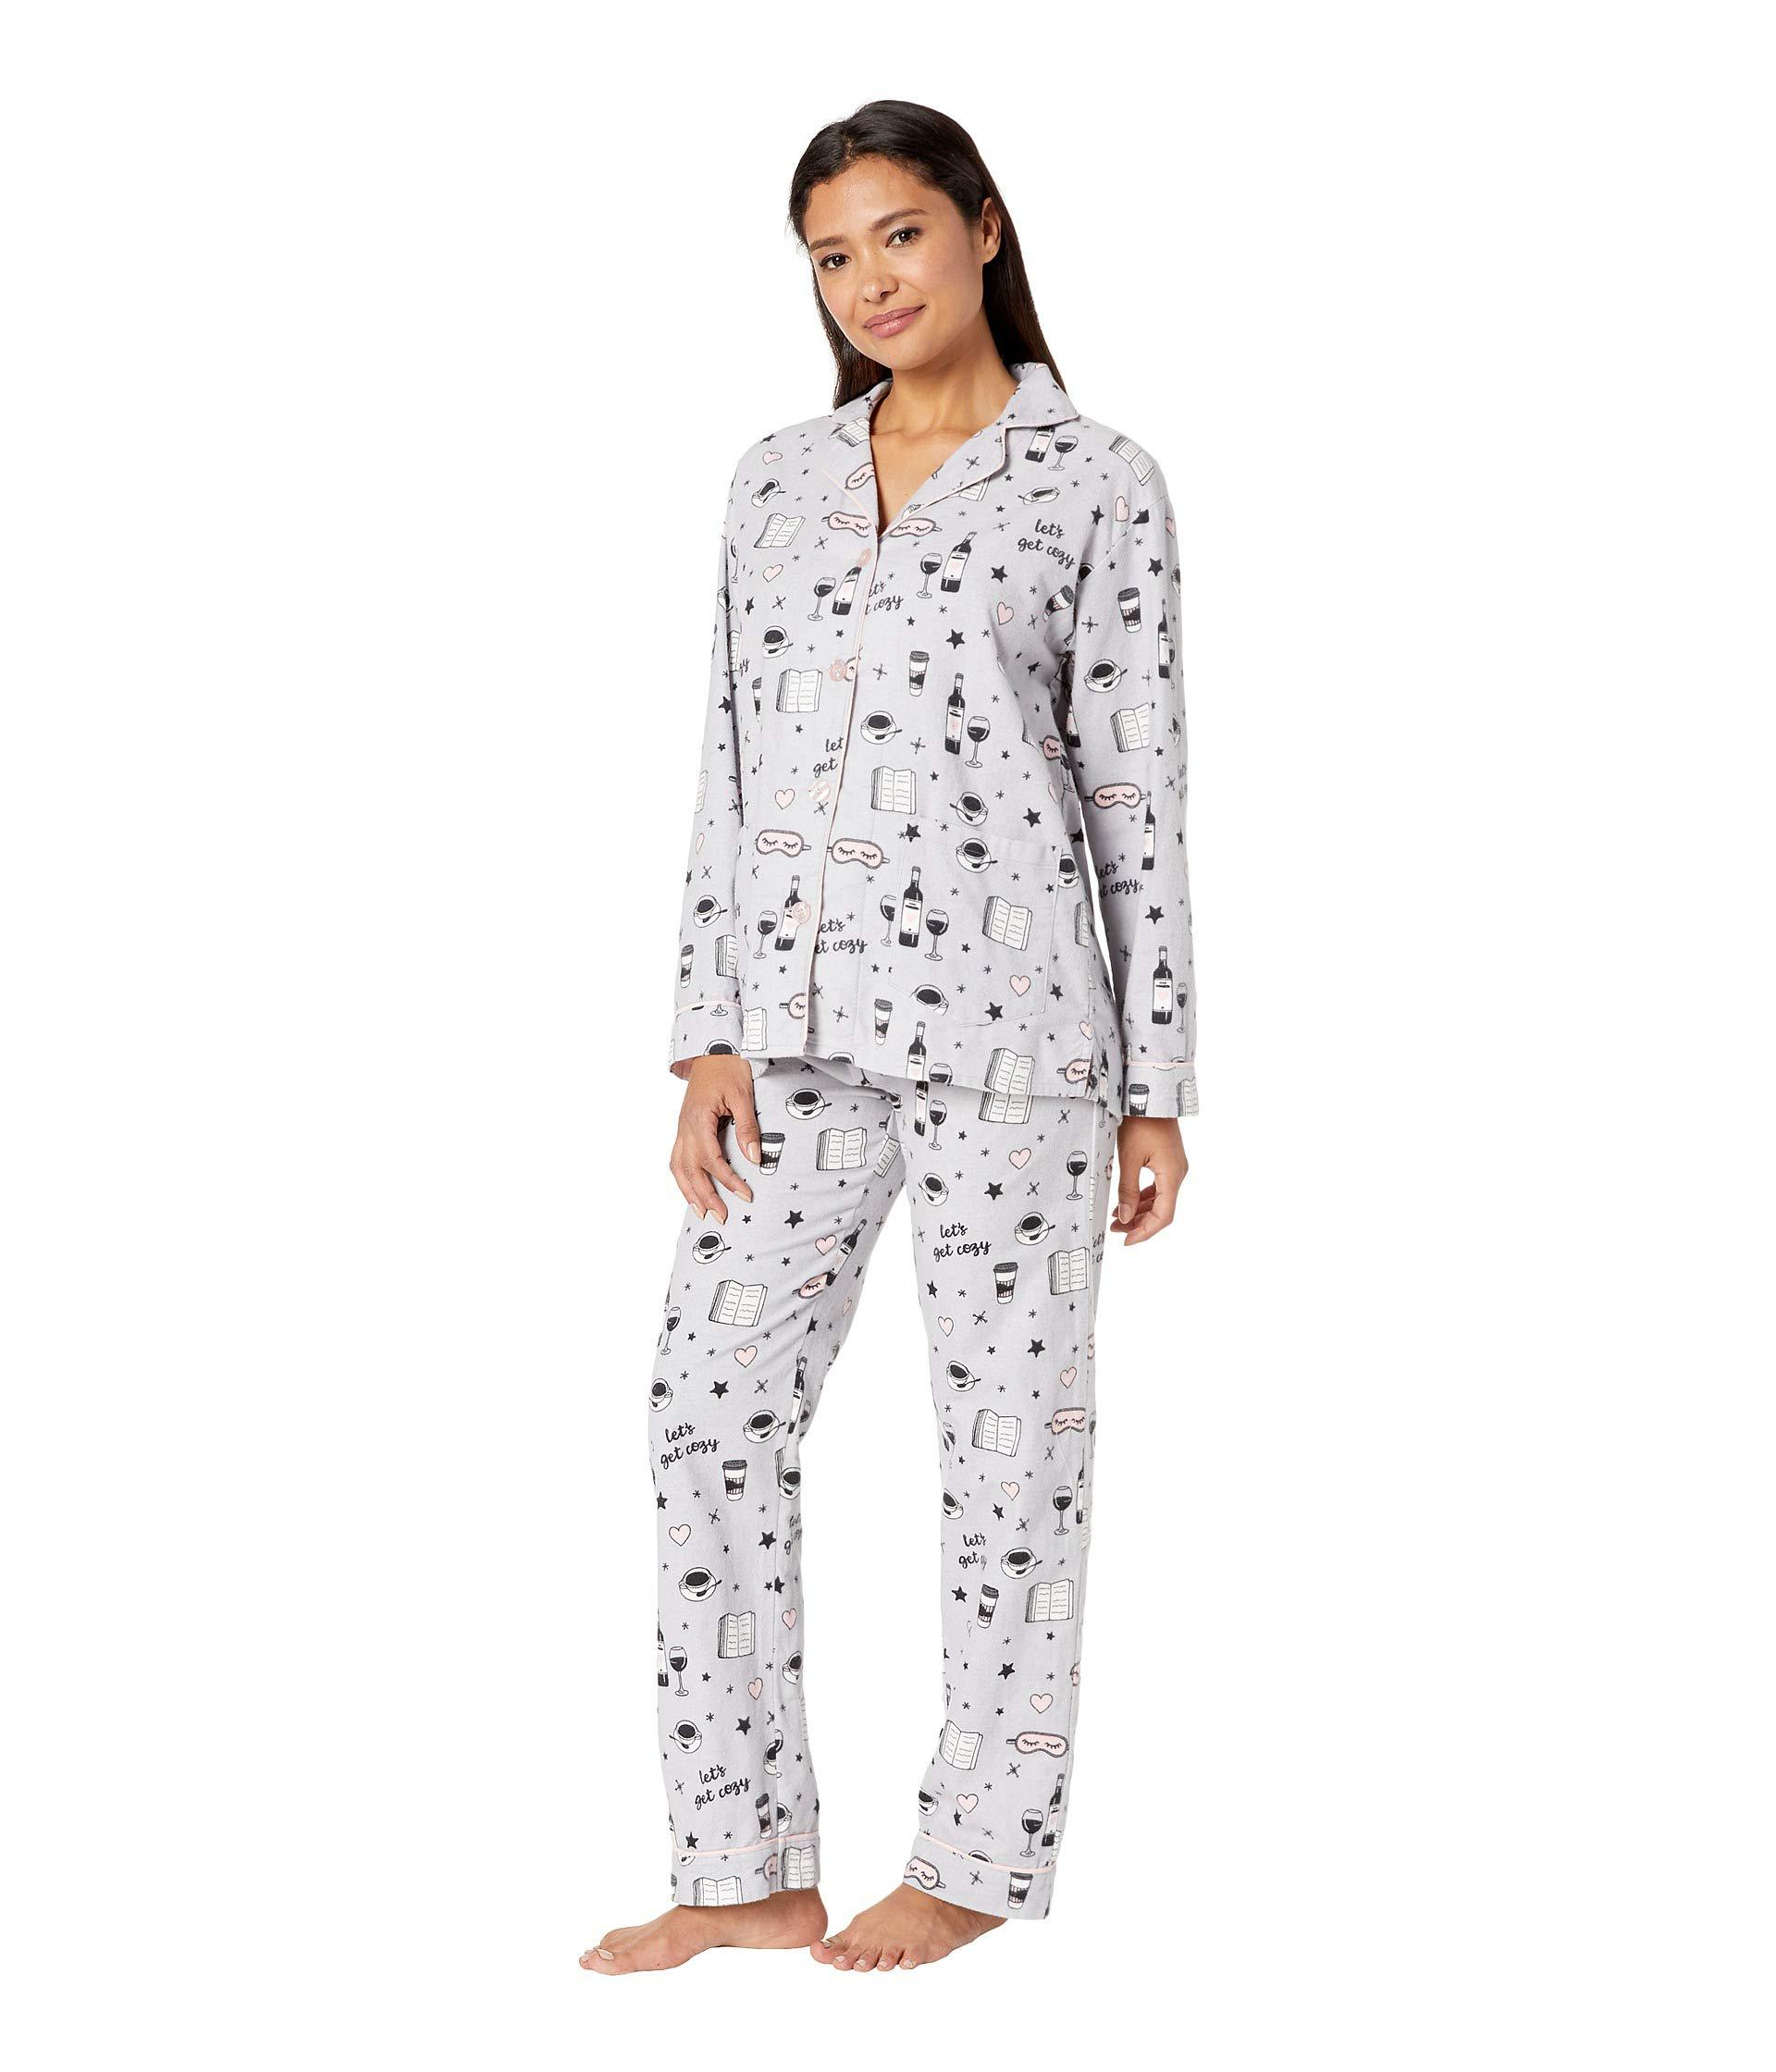 Lyst - Pj Salvage Let s Get Cozy Pj Set (light Grey) Women s Pajama Sets in  Gray 30b8a0acb